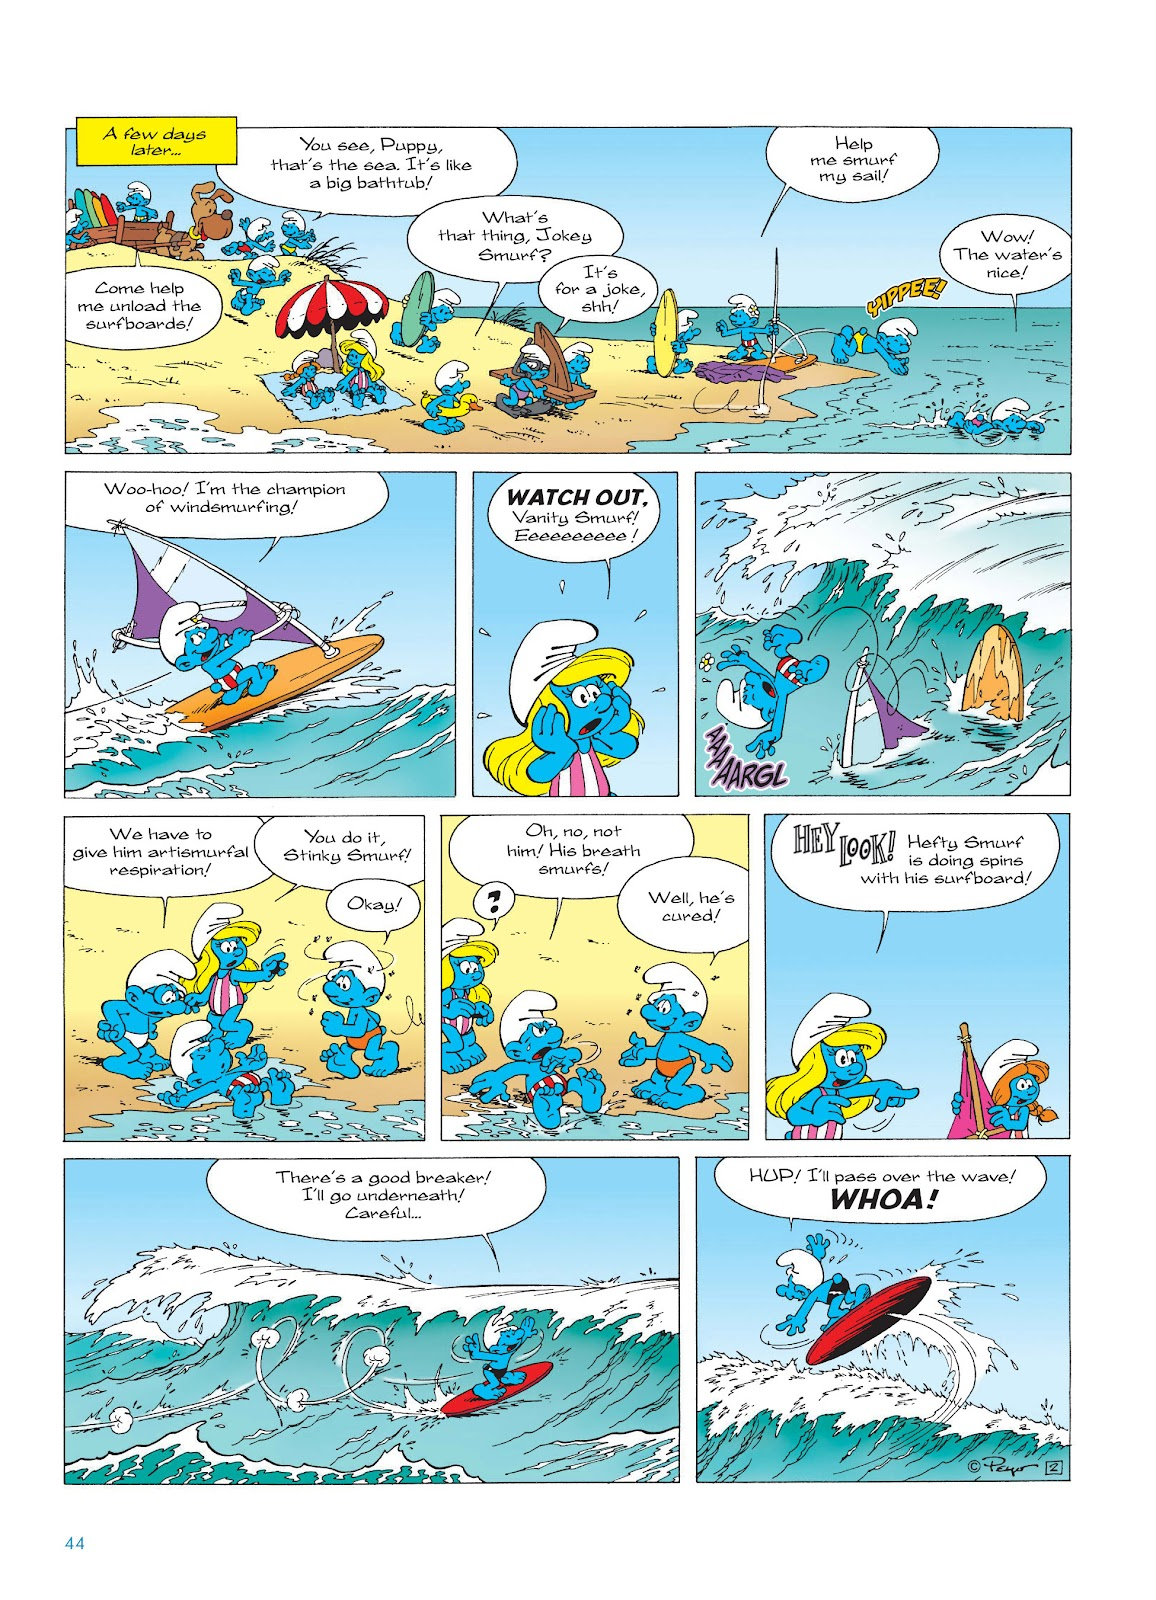 Read online The Smurfs comic -  Issue #17 - 44